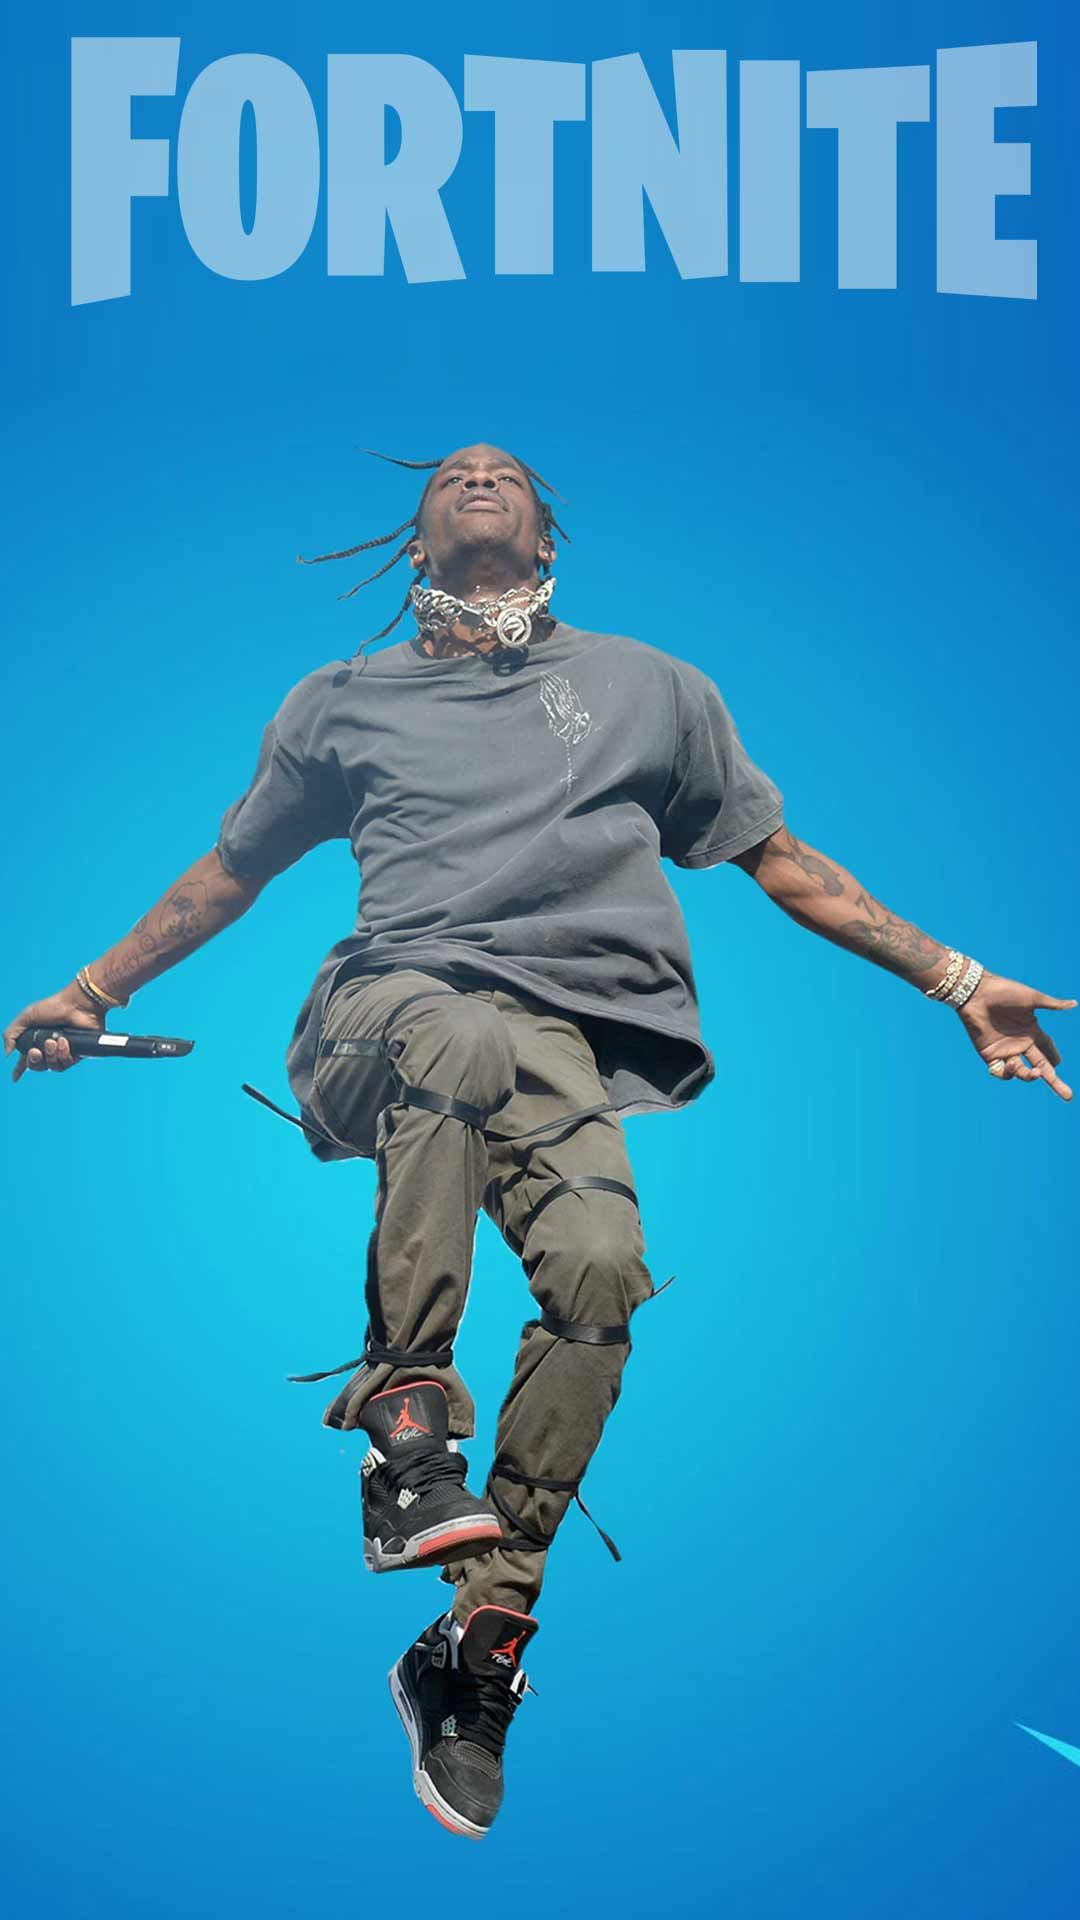 Travis Scott Fortnite Wallpaper Phone Backgrounds For Free Download On Android Mobile To Add As Cellphone Lock Screen Image Cool Looking Skin Pics En 2020